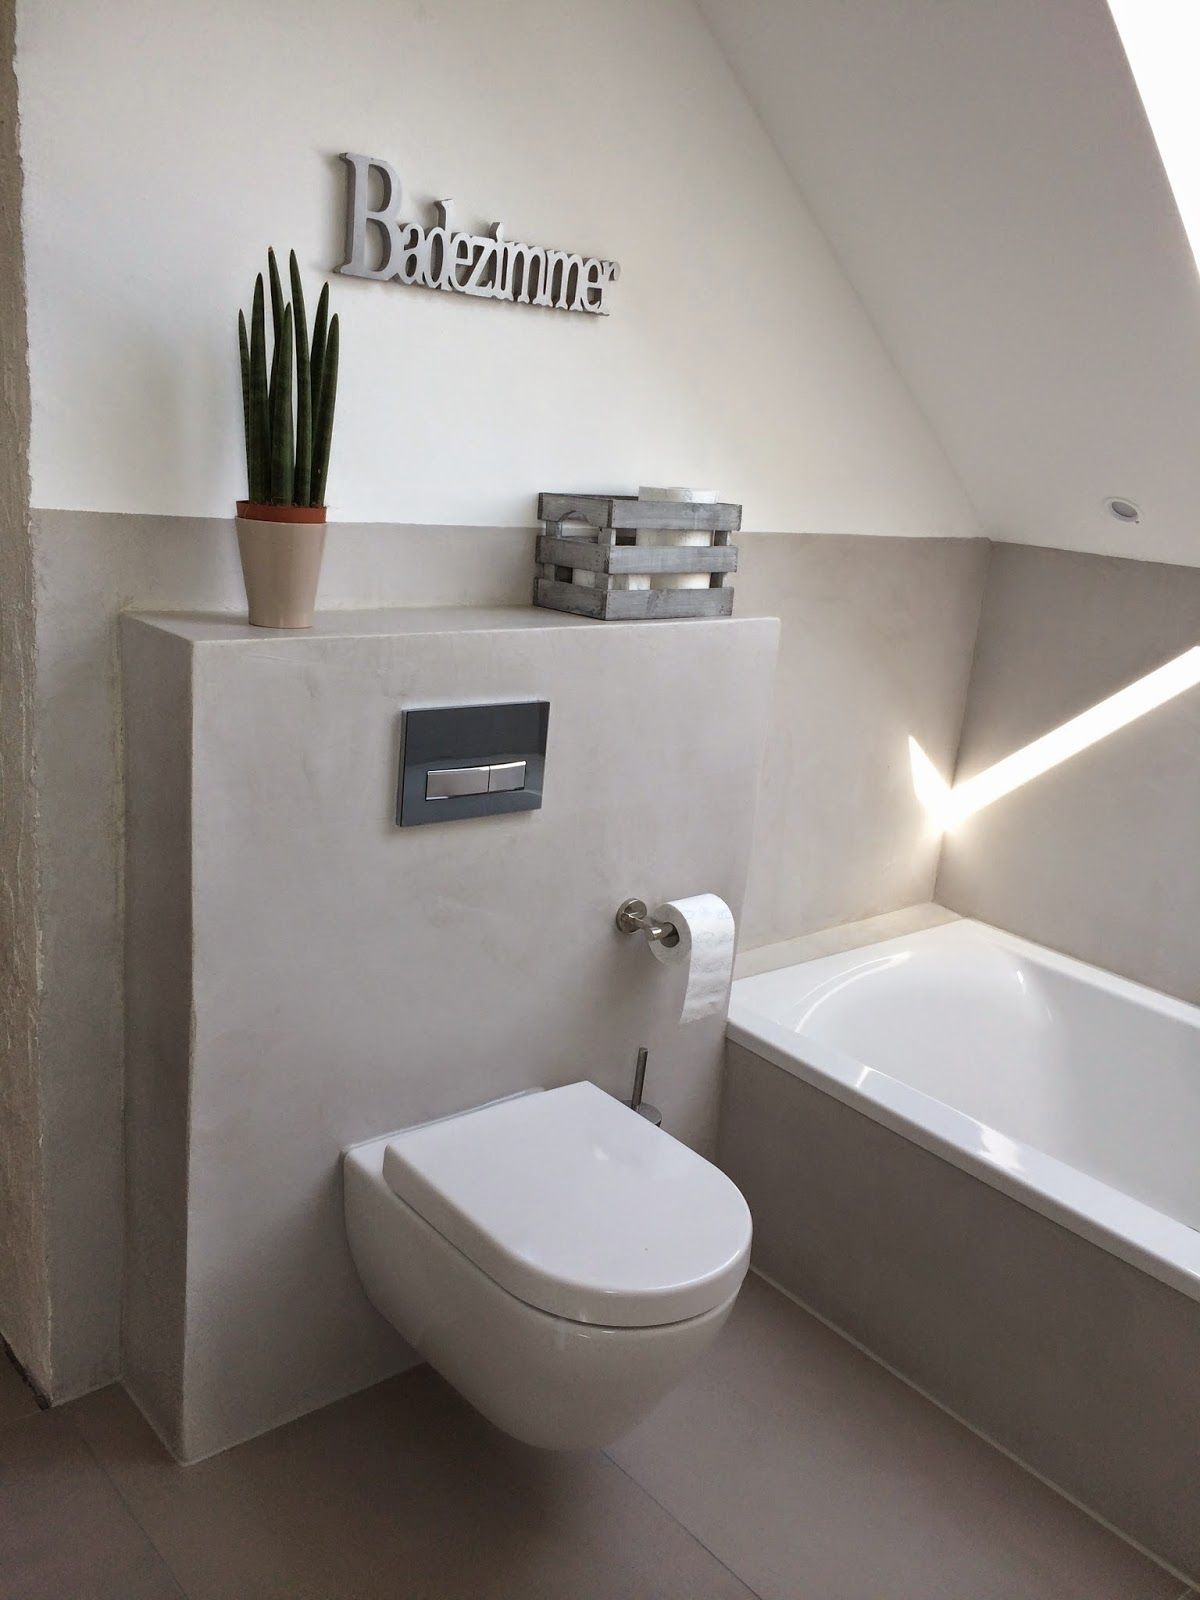 Wand Wohndesign Beton Cire September 2014 Badezimmer Badmobel Badezimmermobel Badmobel Set Spiegelschrank Bad Bad In 2020 Small Toilet Concrete Design Bad Design